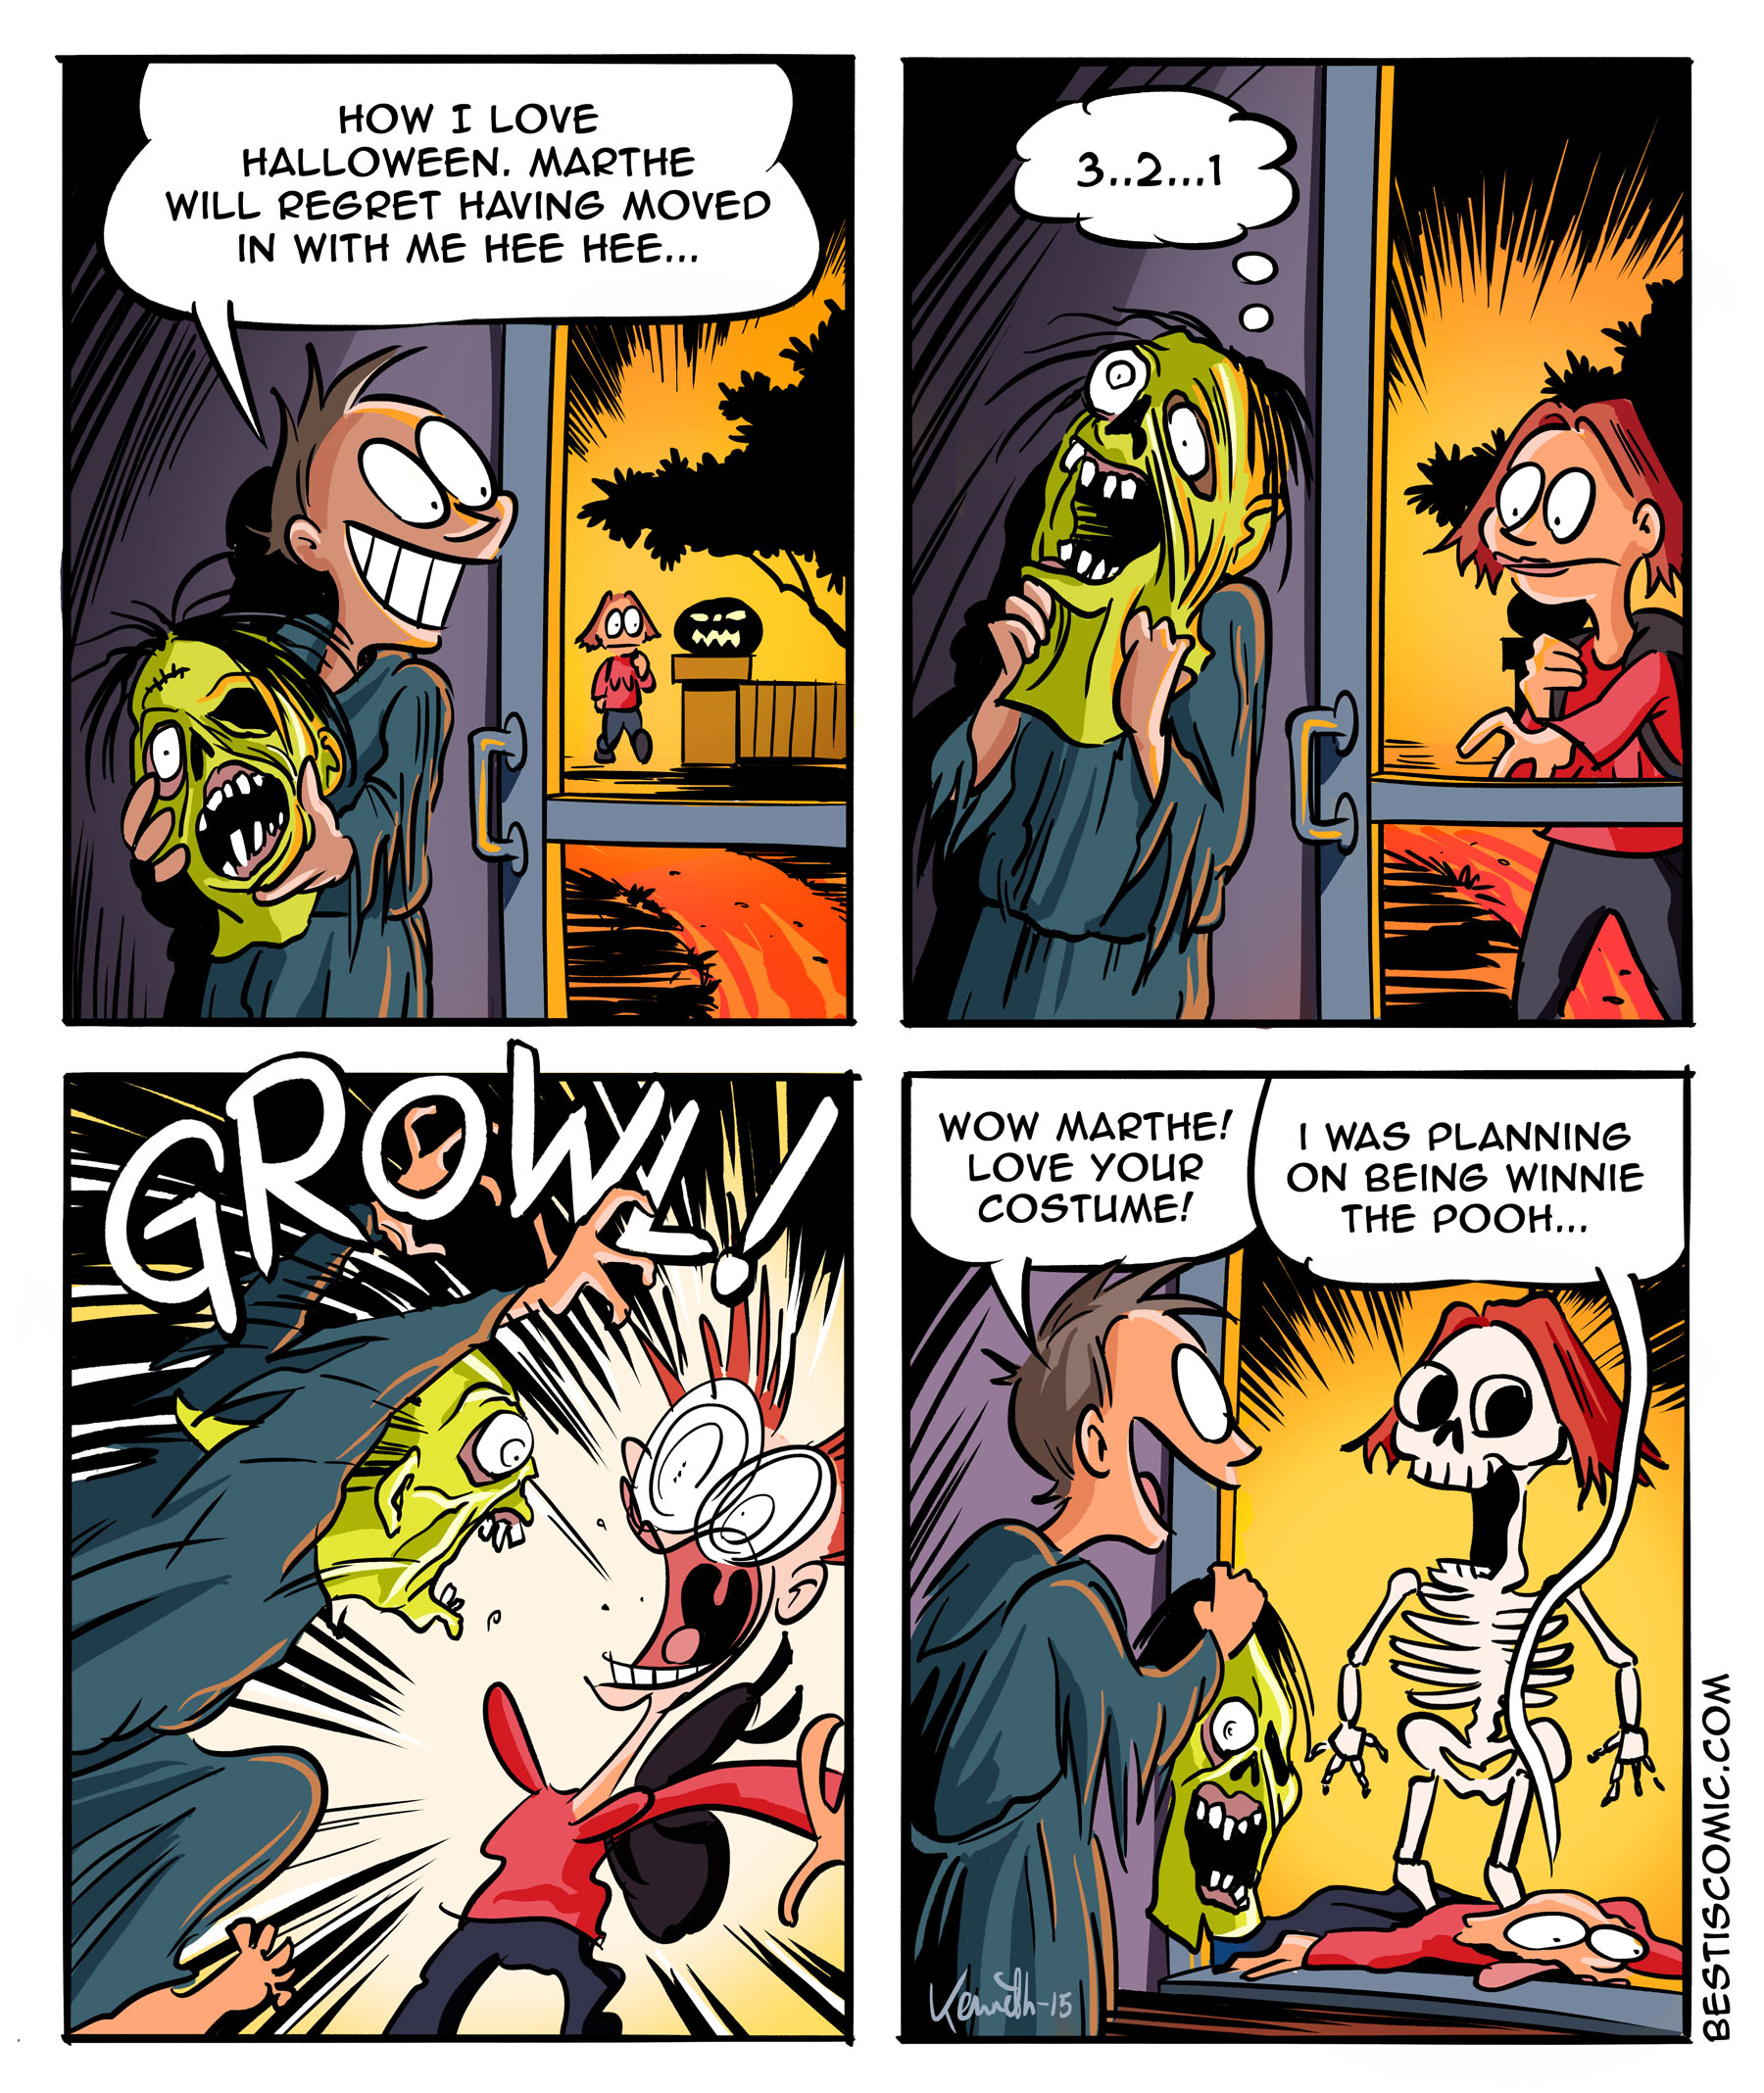 Halloween-comic-strip-kennethlarsen